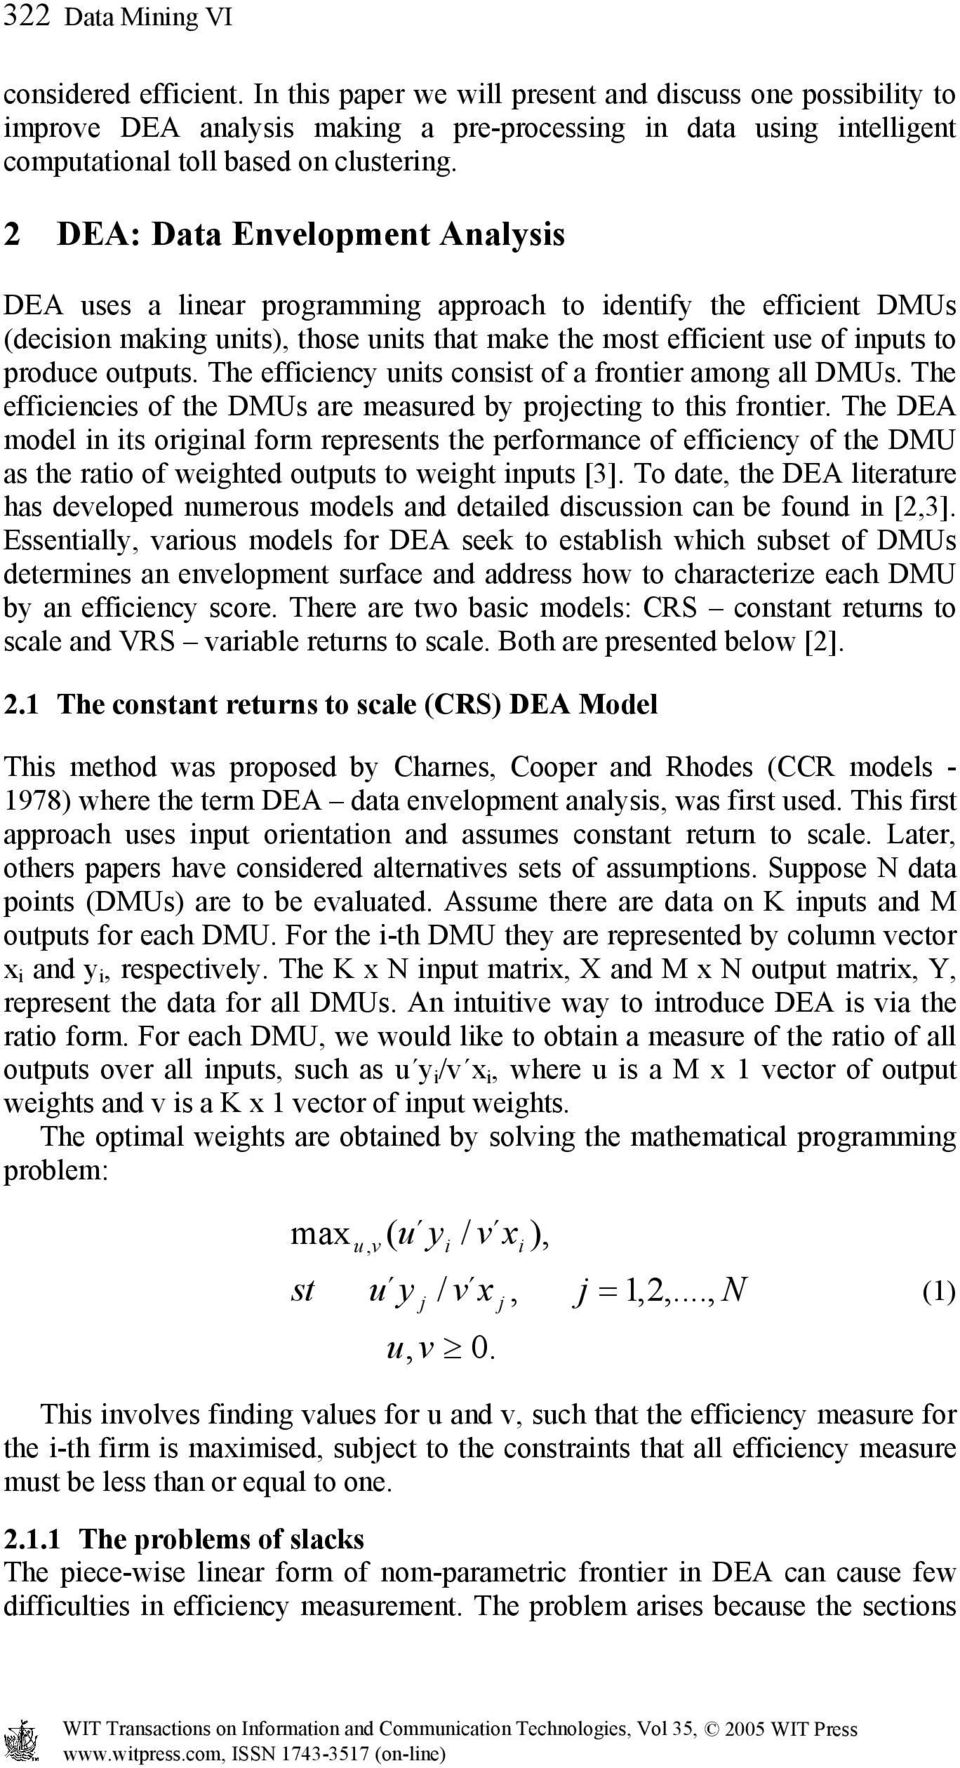 2 DEA: Data Envelopment Analysis DEA uses a linear programming approach to identify the efficient DMUs (decision making units), those units that make the most efficient use of inputs to produce